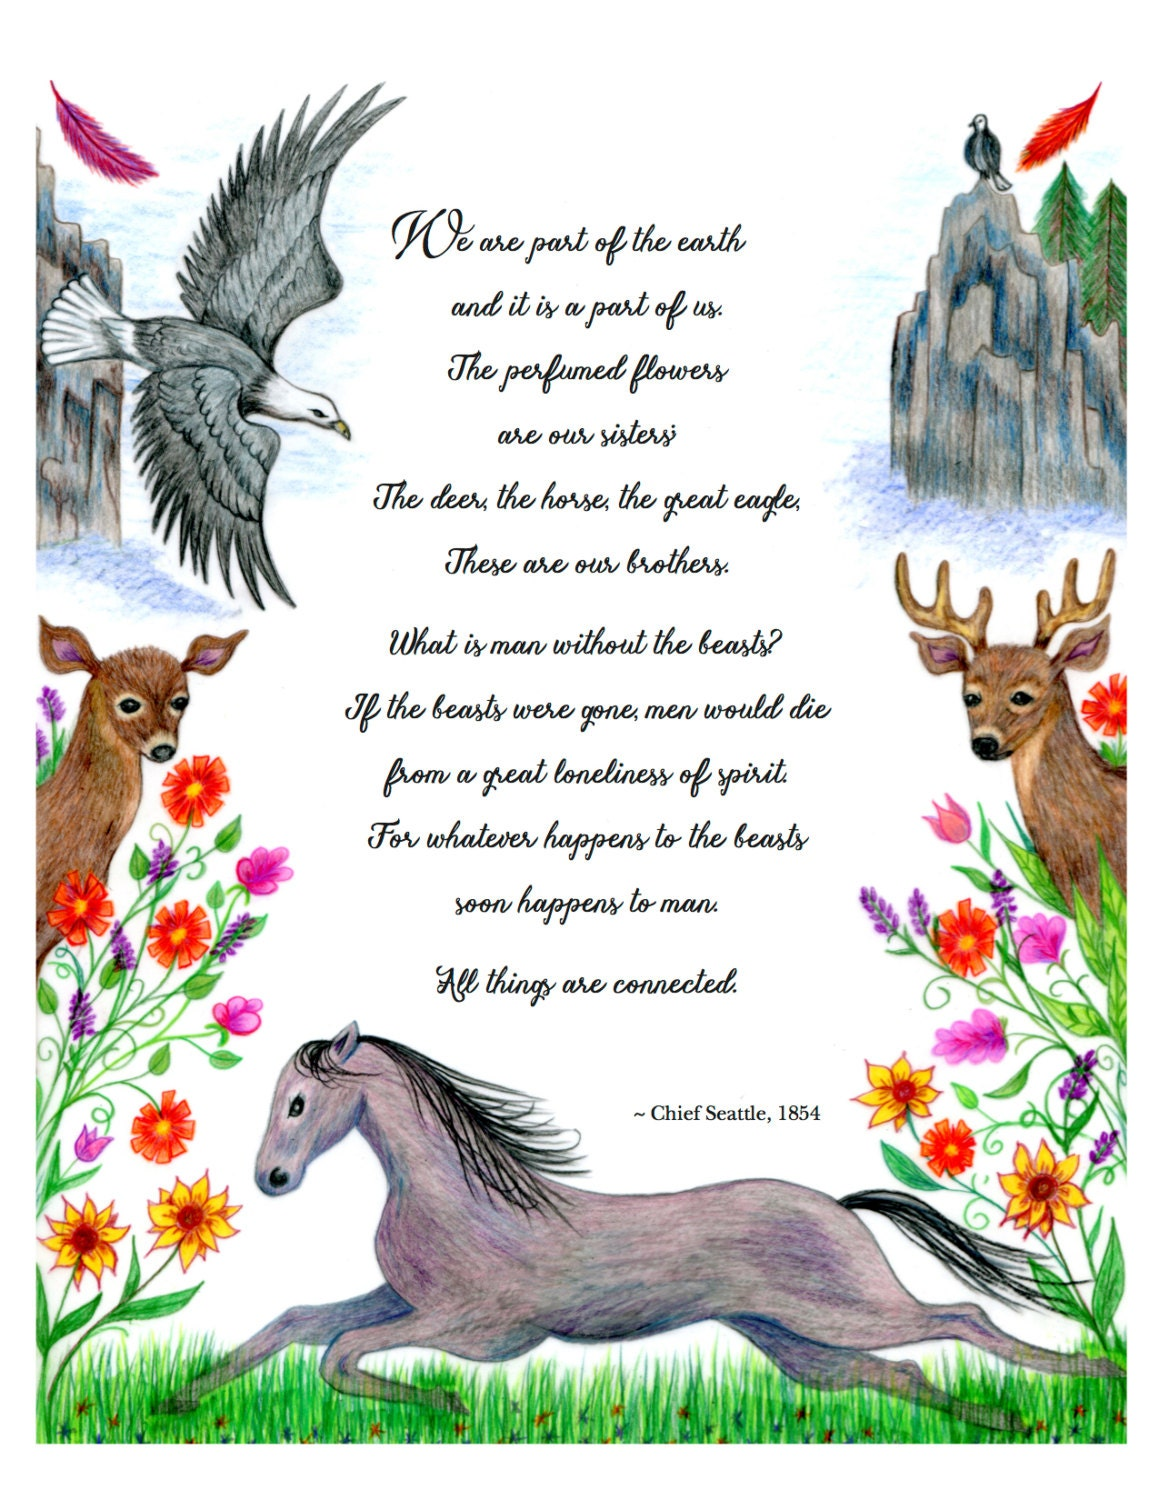 Chief Seattle Native American speech about animals